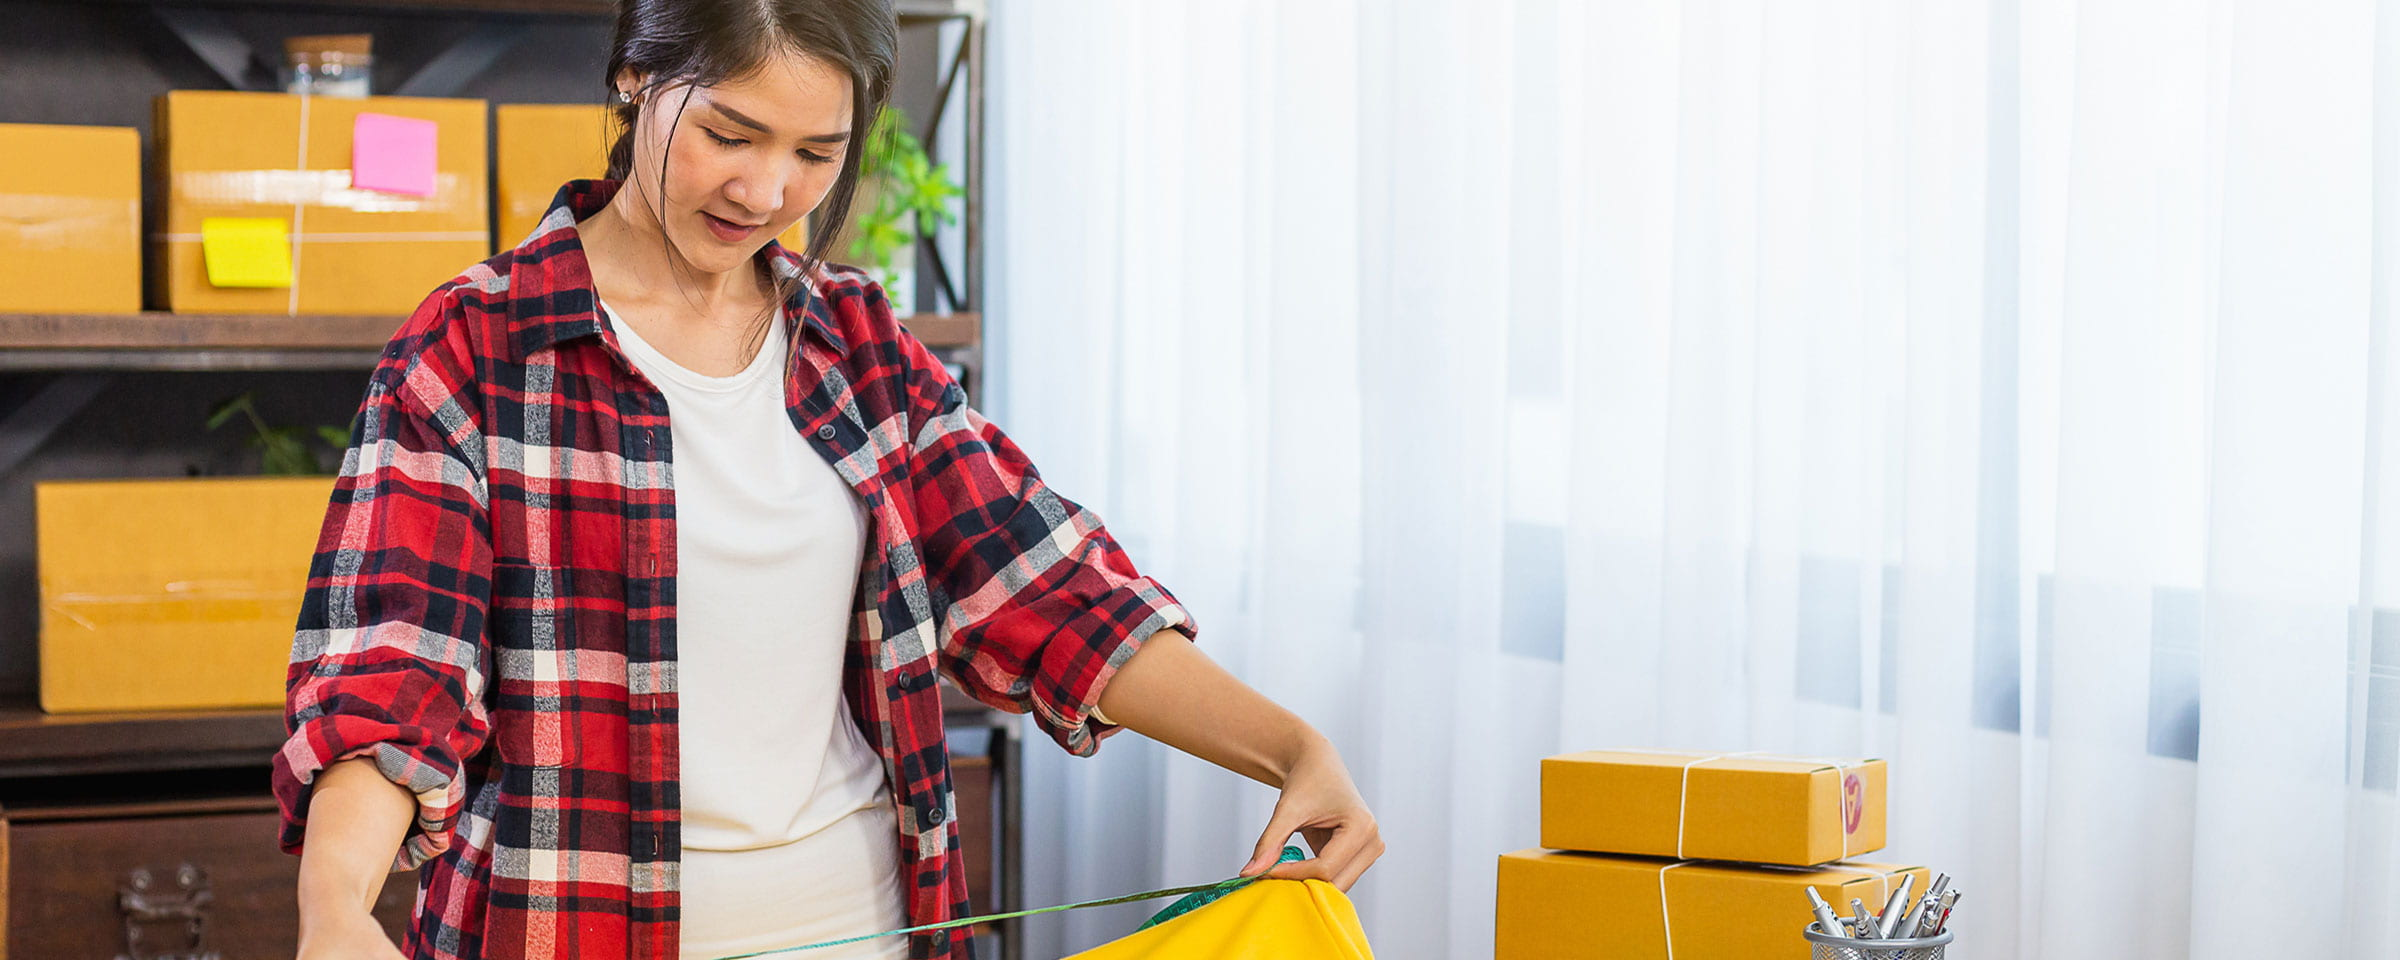 Young woman prepping packages in home office